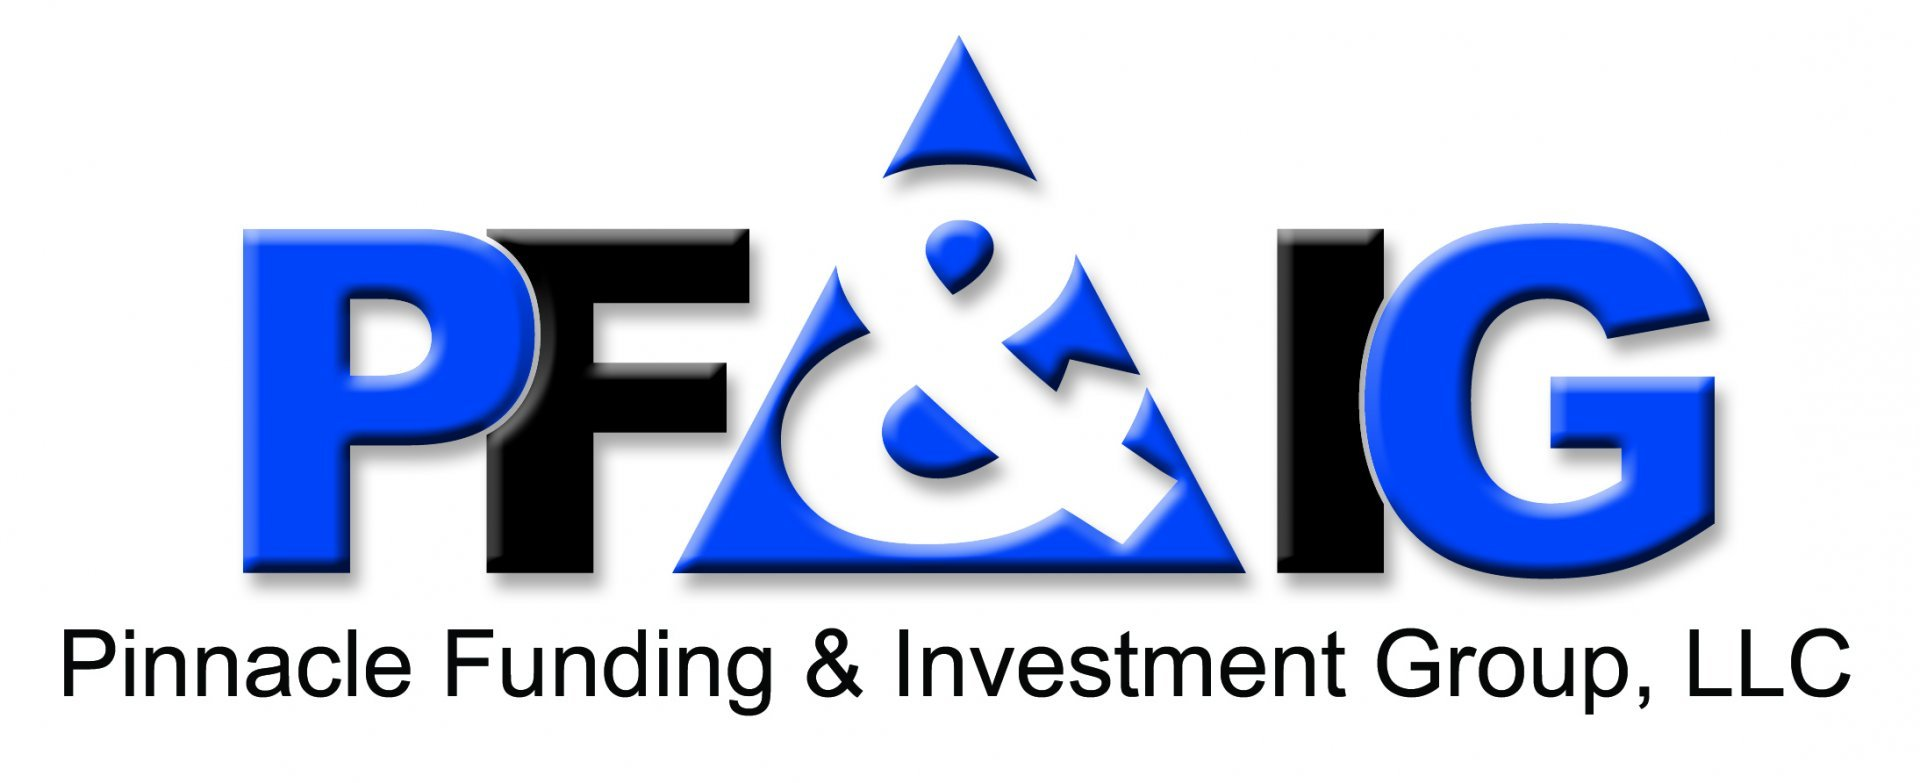 Pinnacle Funding & Investment Group, LLC logo